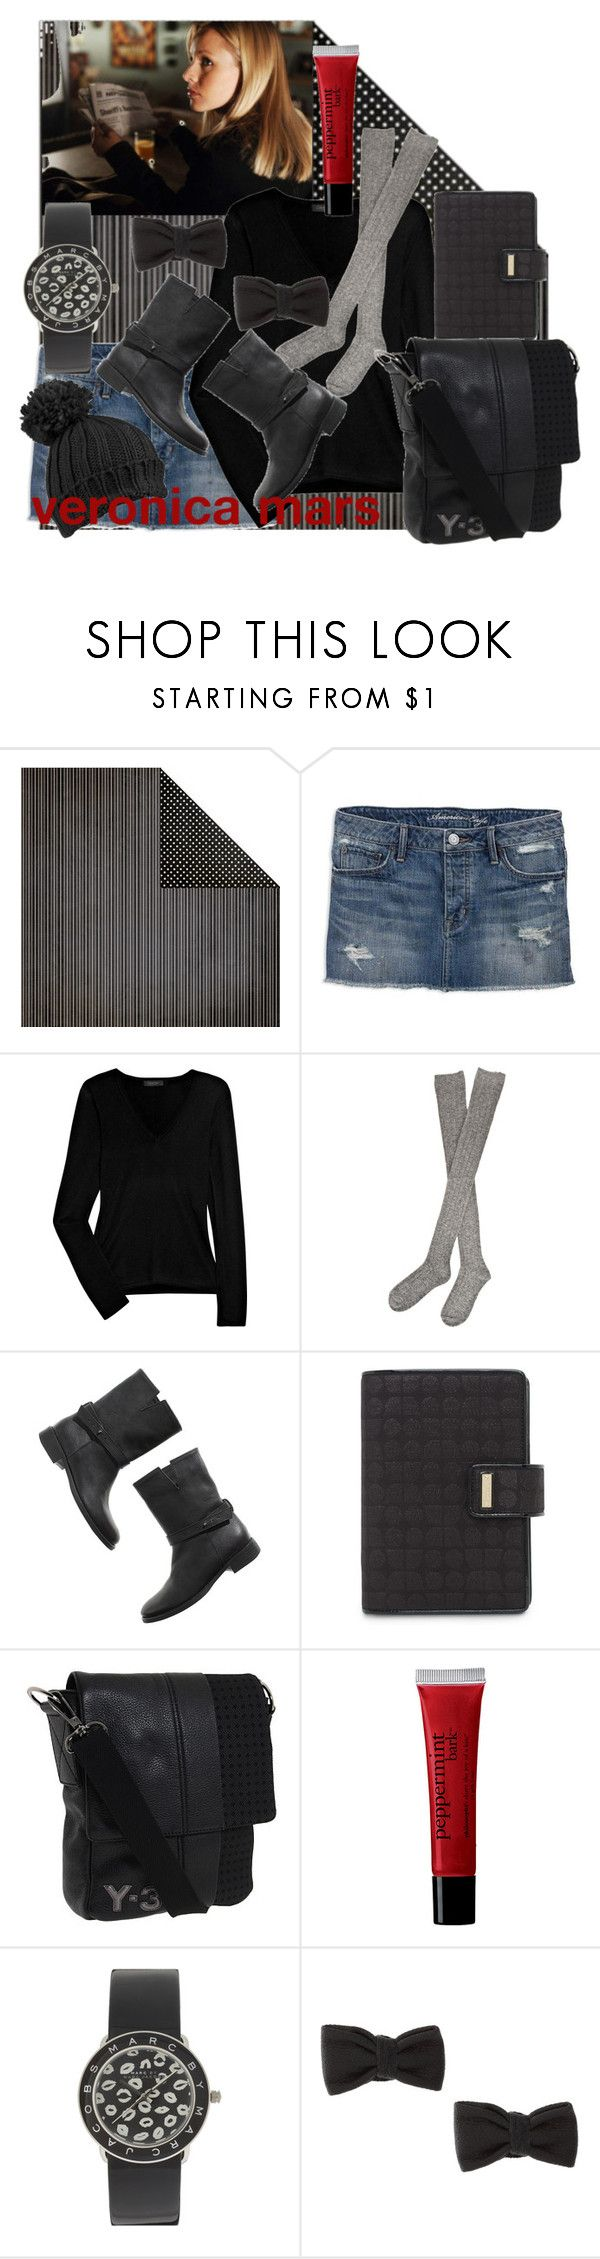 """""""veronica mars"""" by margarita25 ❤ liked on Polyvore featuring American Eagle Outfitters, Calvin Klein Collection, Hansel from Basel, Madewell, Kate Spade, Y-3, philosophy, Marc by Marc Jacobs, ASOS and Forever 21"""